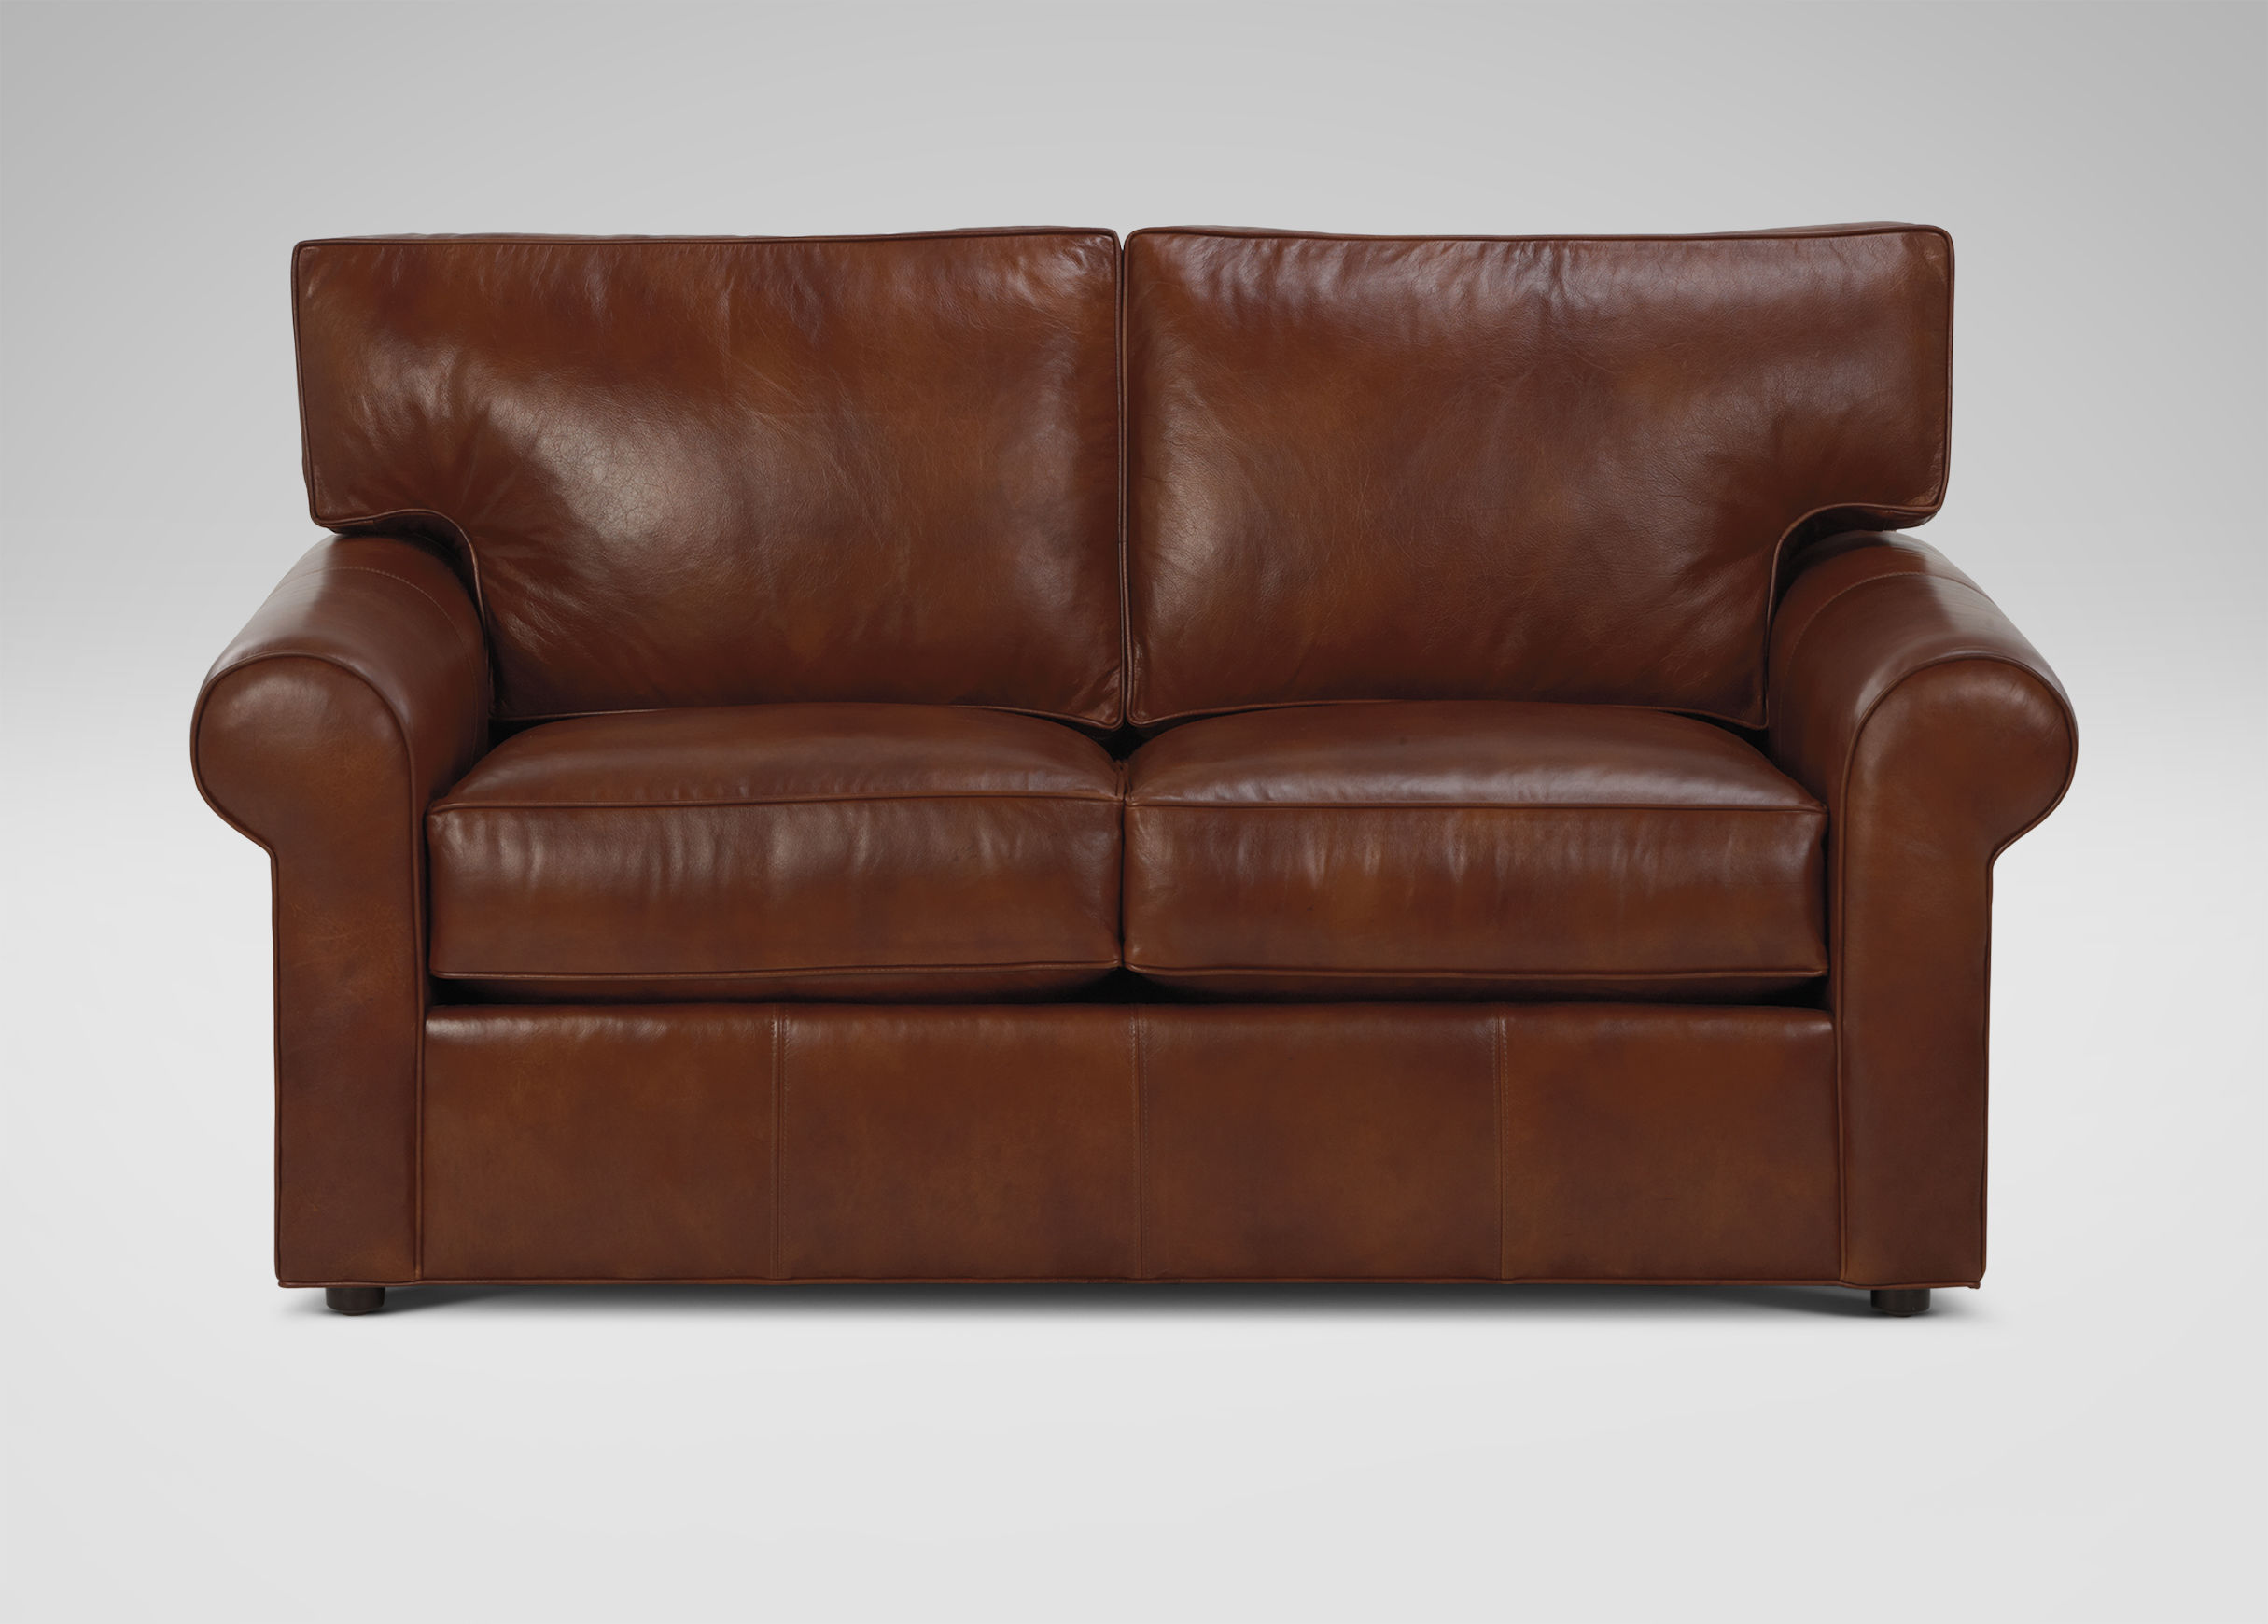 Ethan Allen Leather Furniture